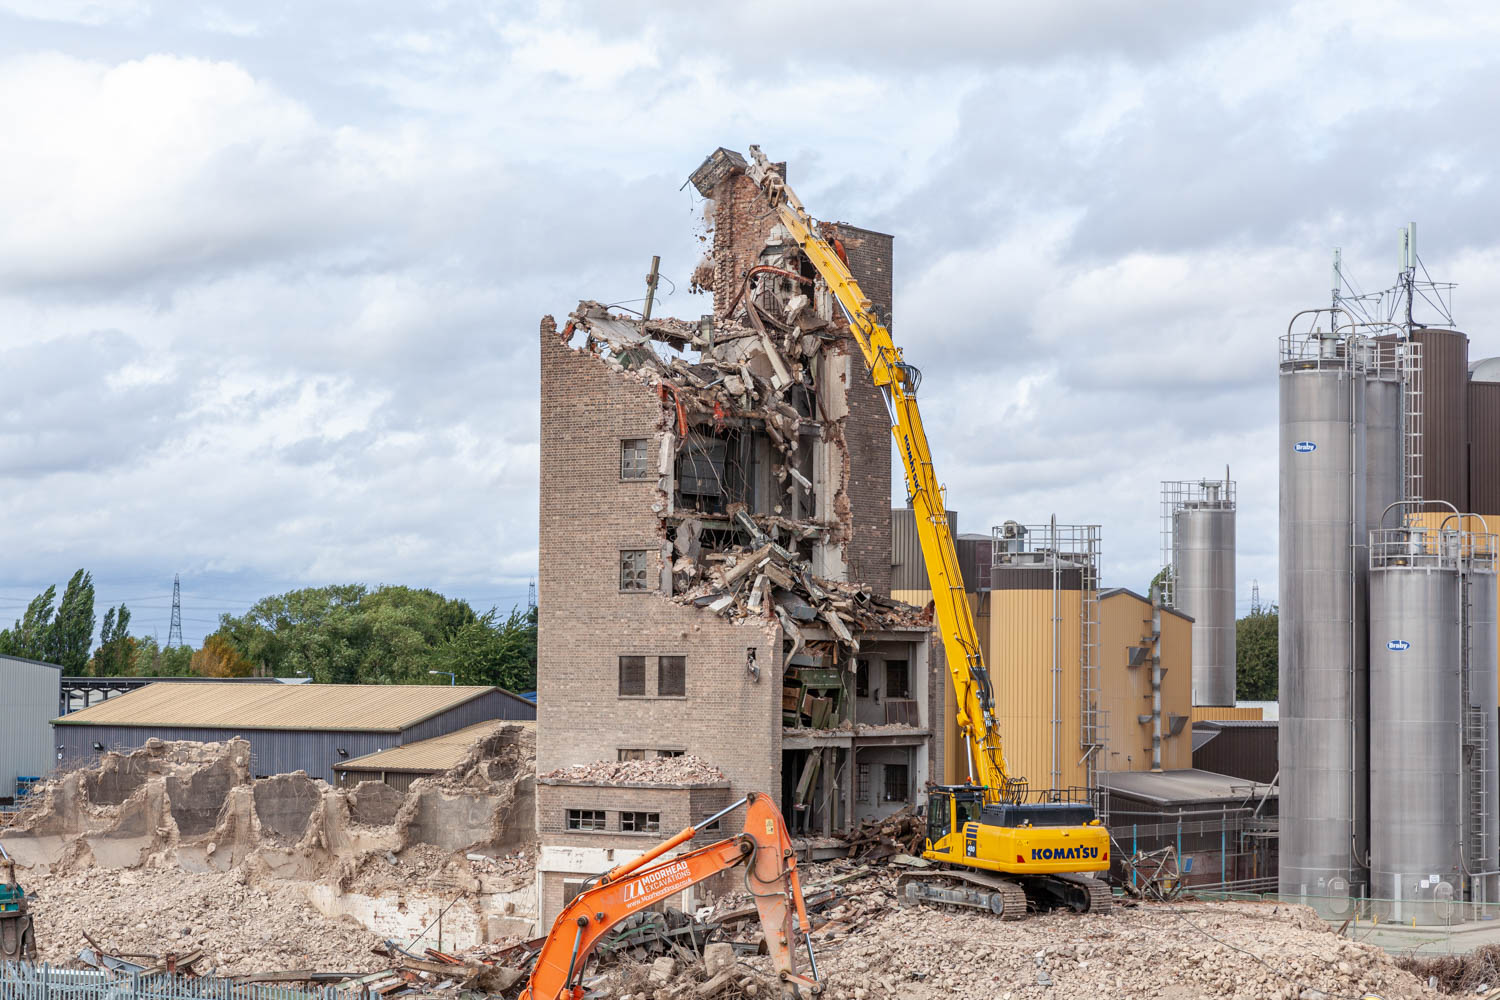 Demolition of old grain silo.